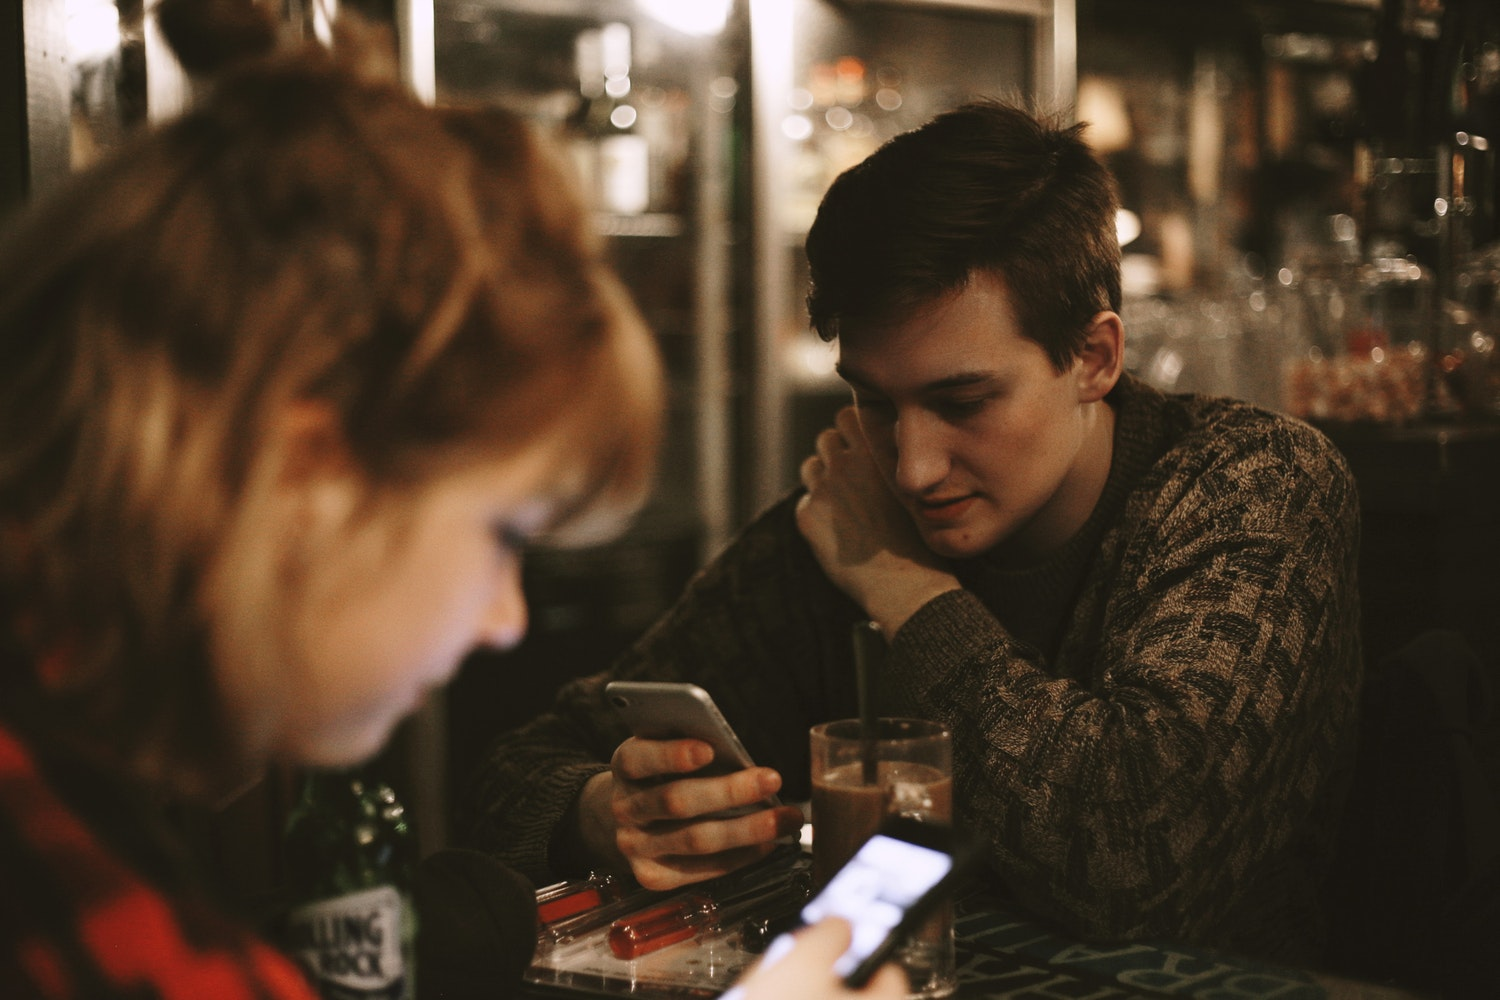 Man and Woman at a dark bar looking at their phones